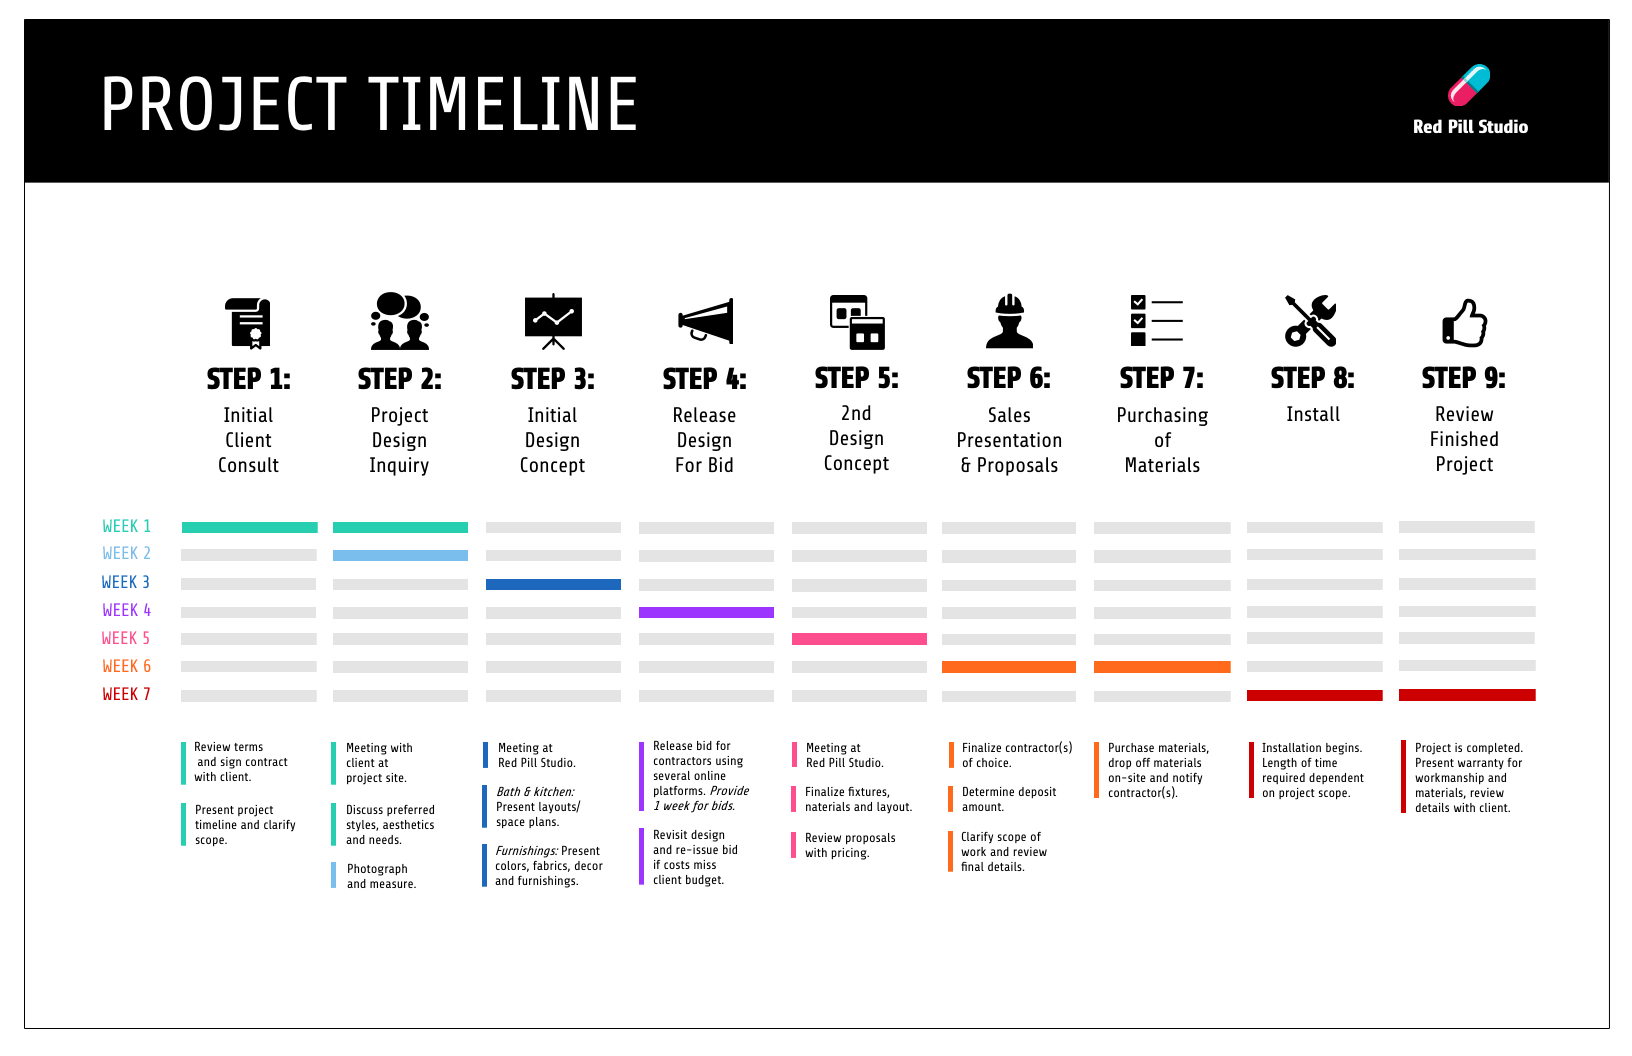 Project Plan Timeline Infographic Template